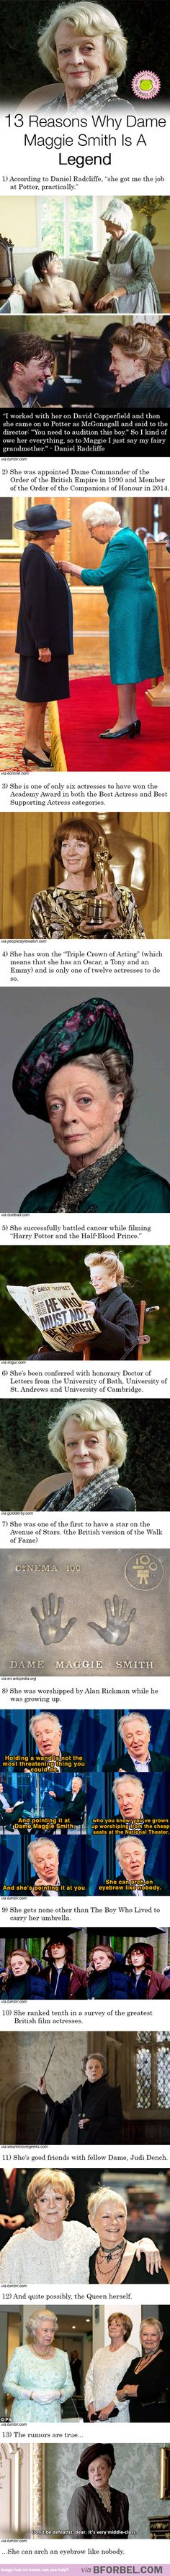 13 Reasons Why Dame Maggie Smith Is A Legend…. I love her. She's one of my favourite actresses ever. On a side note, check out my board for HP actors and actresses off the HP set: The Muggles Behind The Magic!